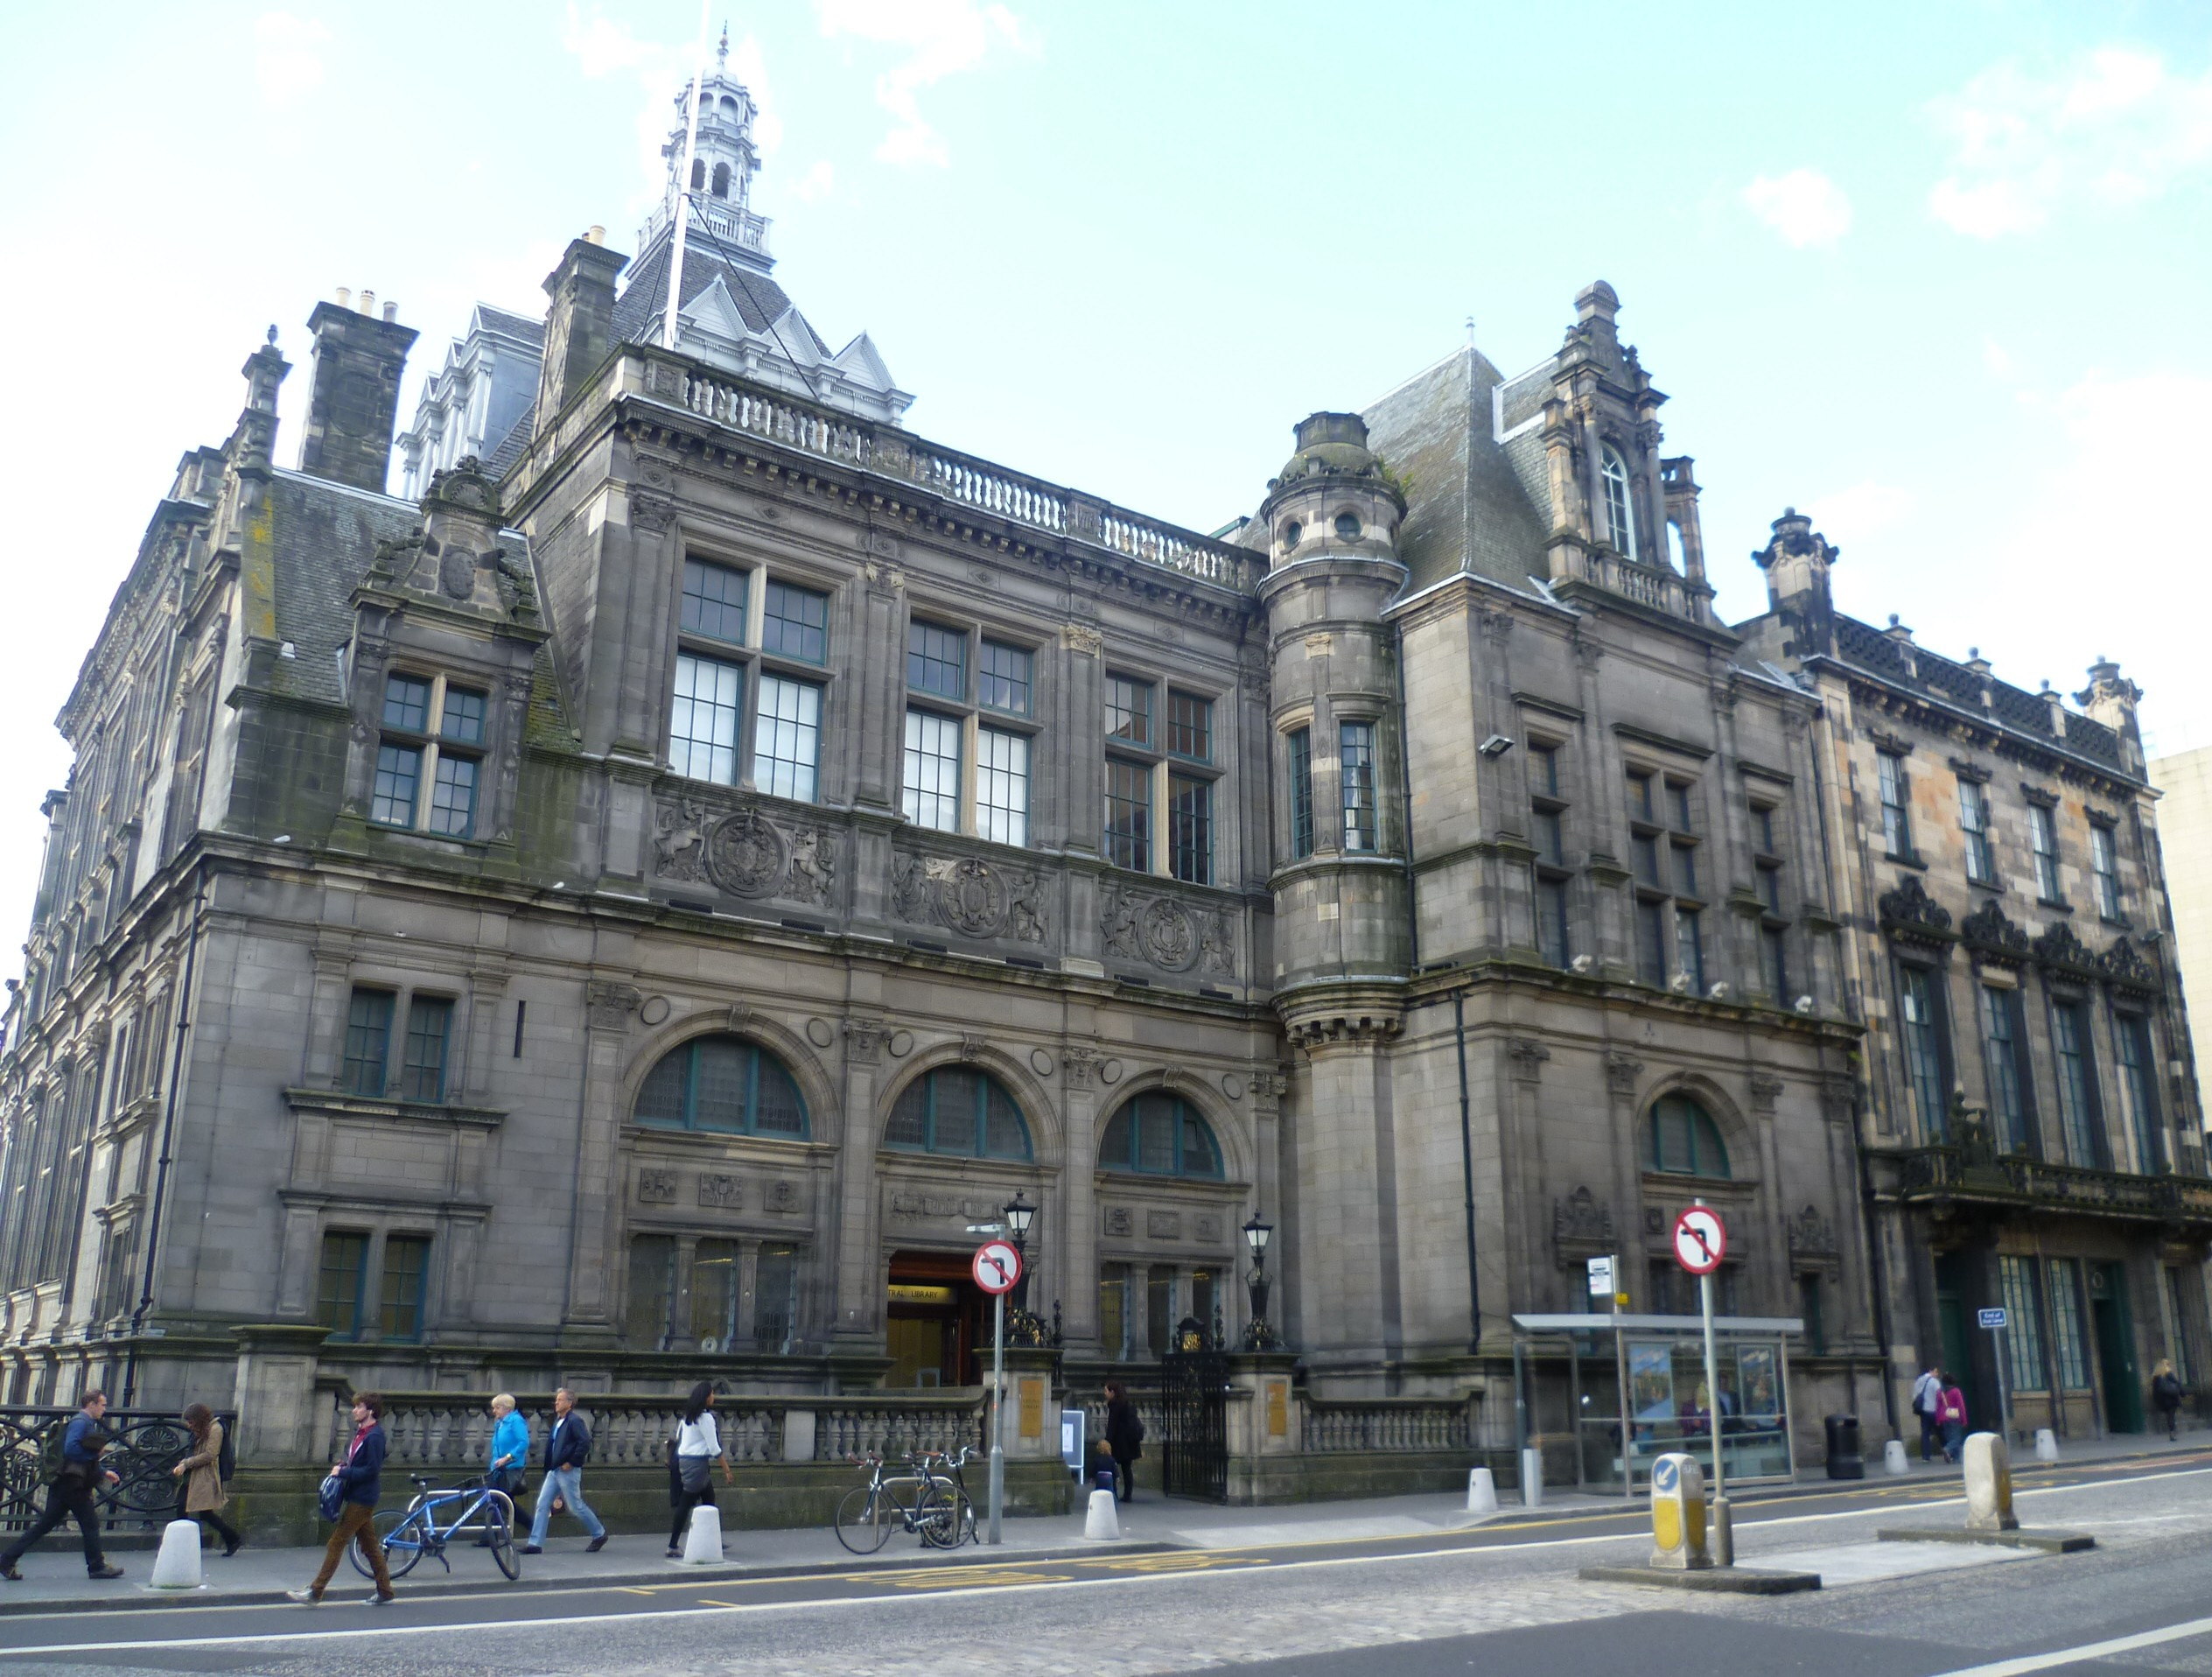 Edinburgh_Central_Library,_George_IV_Bridge